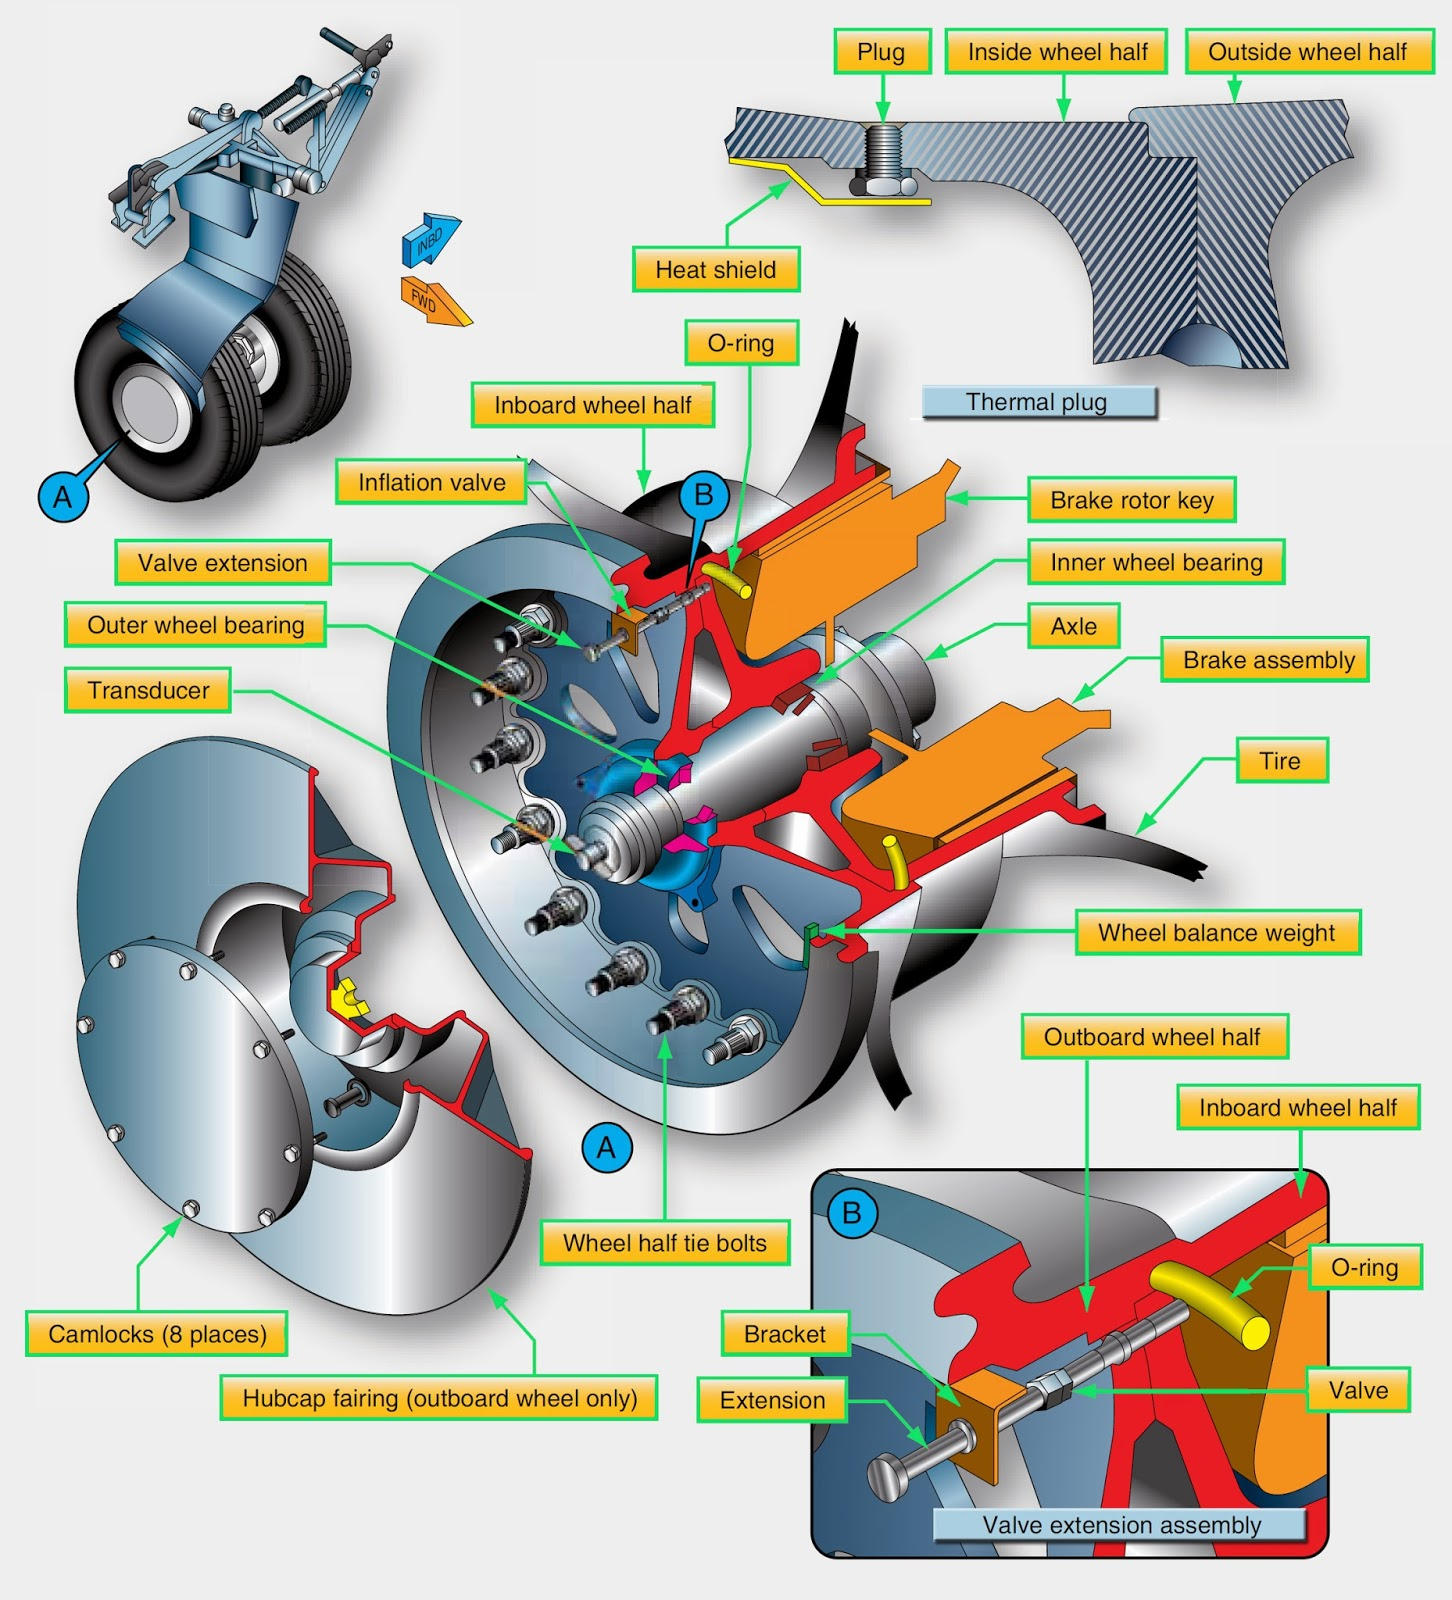 modern aircraft brakes As well as heavy servicing equipment, today's modern aircraft wheels and brakes  also require increasingly intricate equipment to ensure their serviceability.